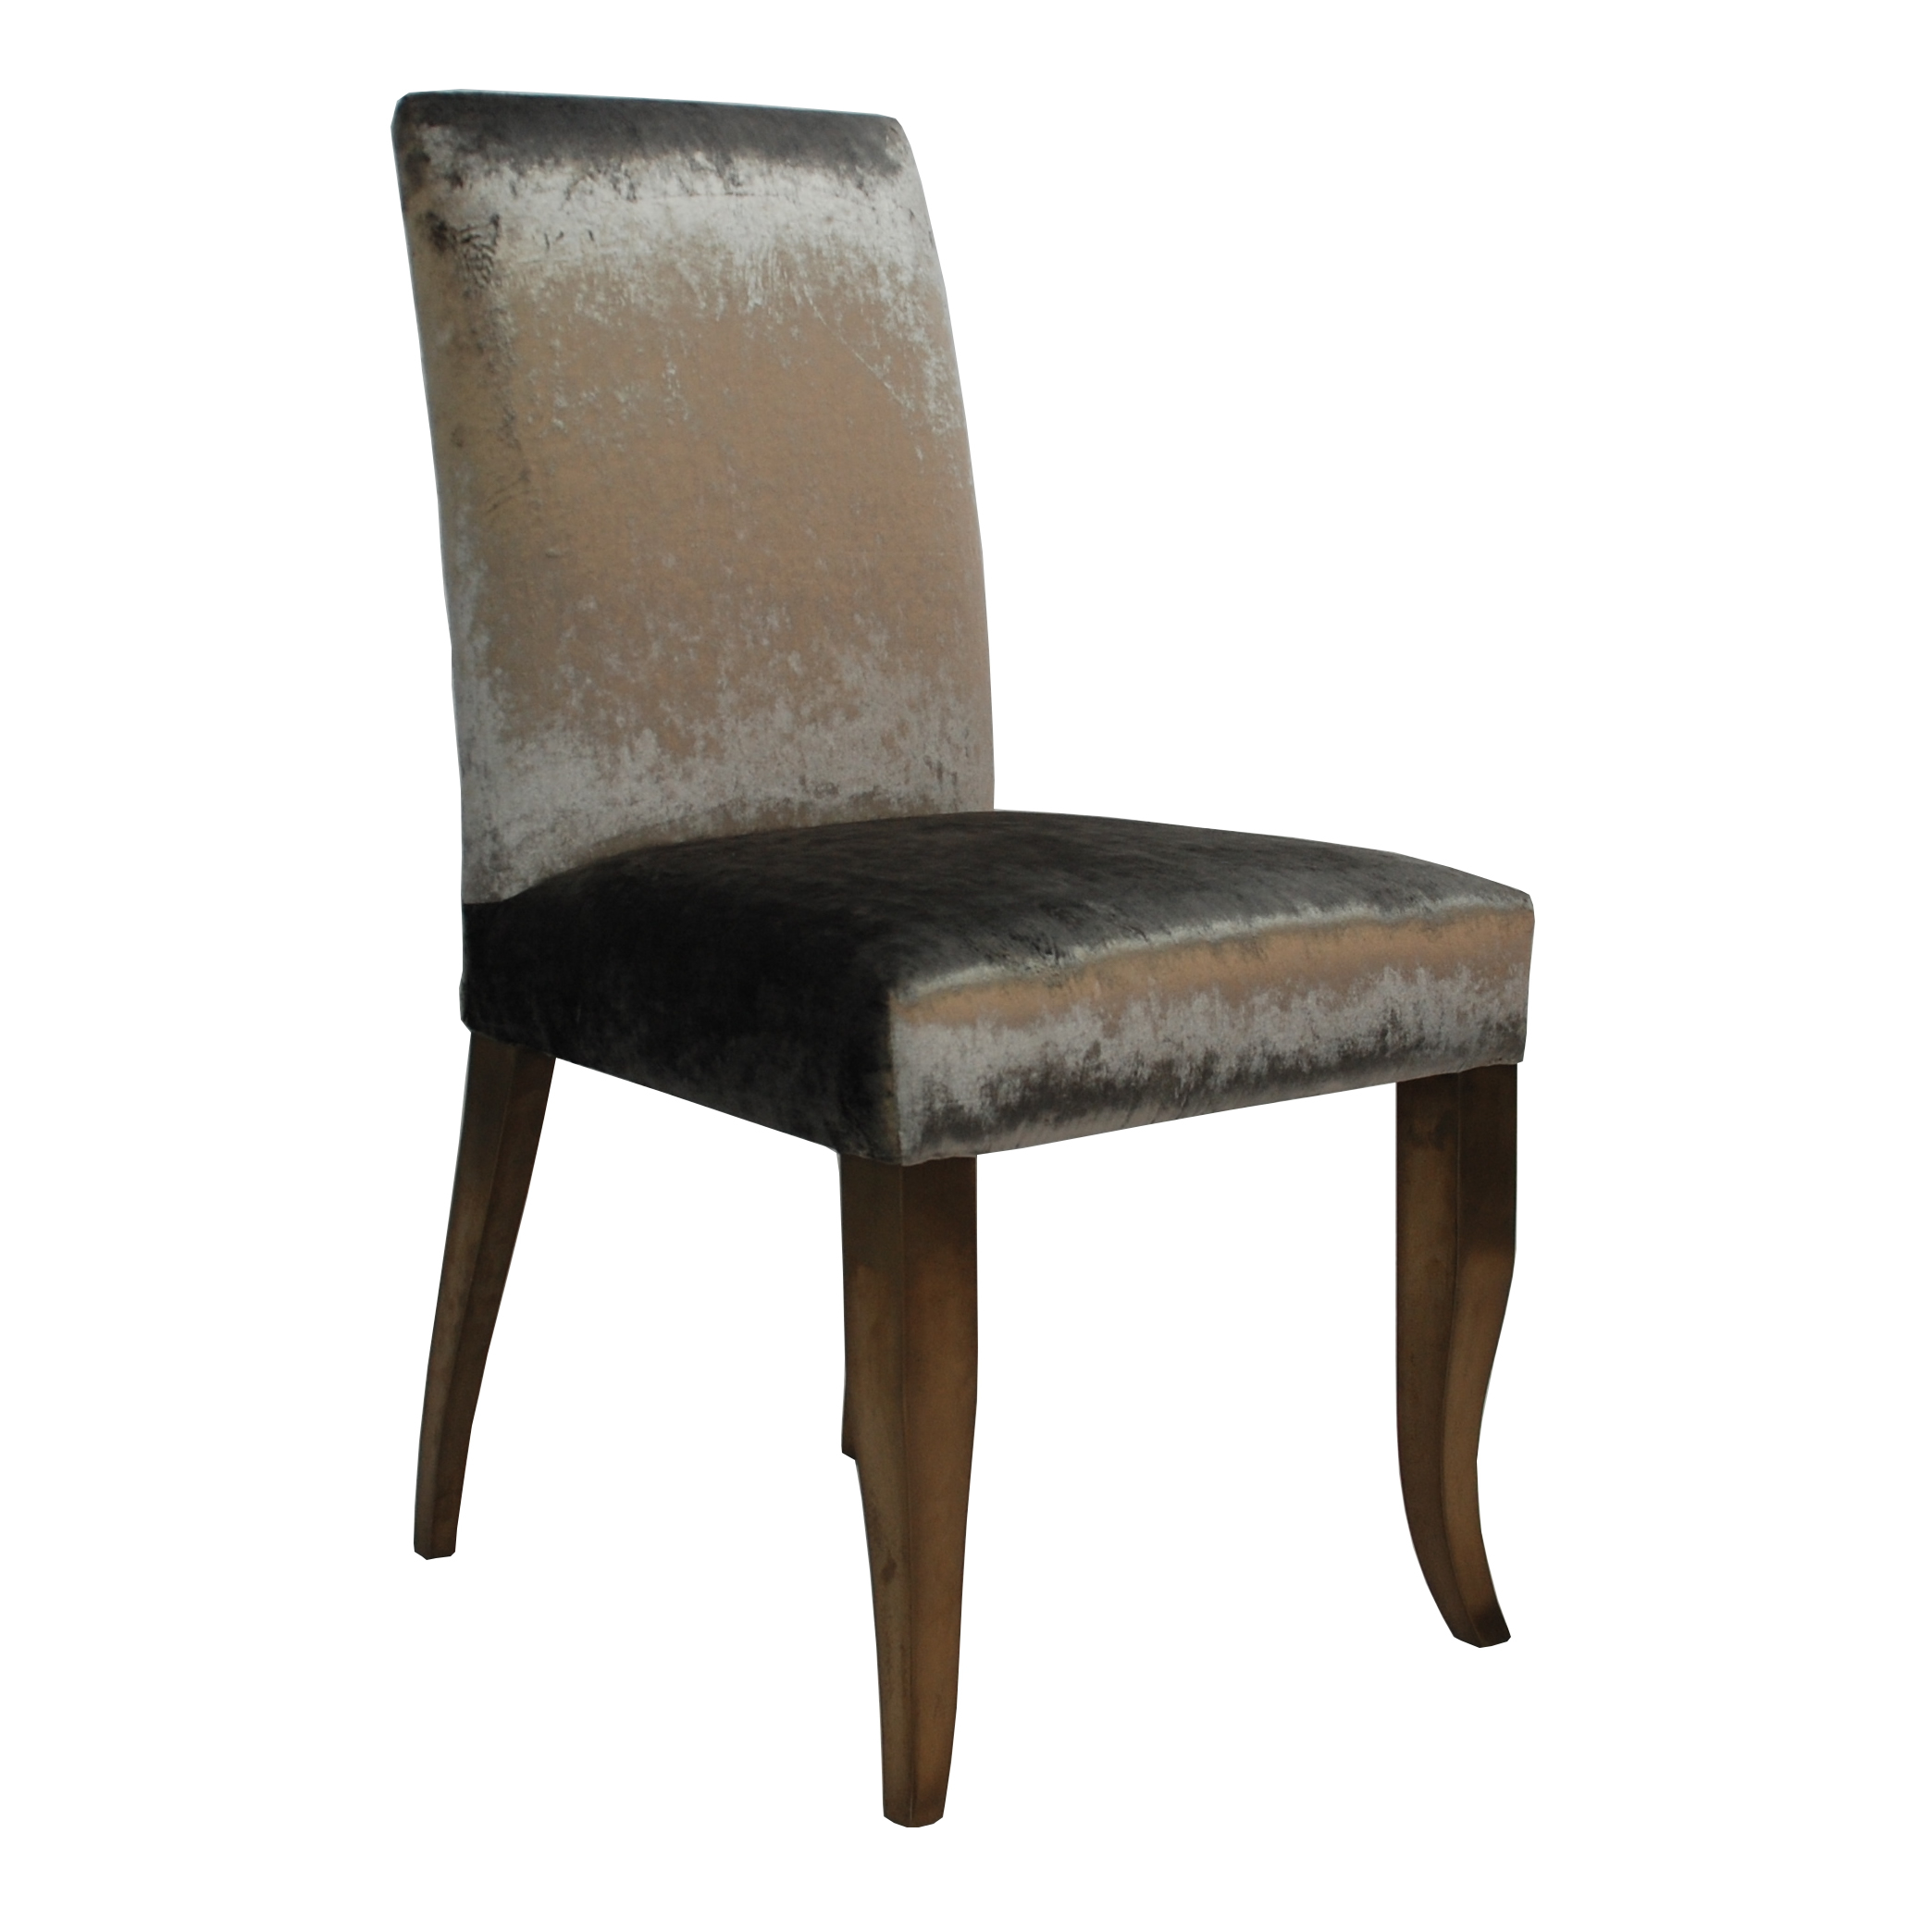 wooden chair frames for upholstery uk nail salon chairs sale bespoke handmade made to order armchairs dining ansty plain back